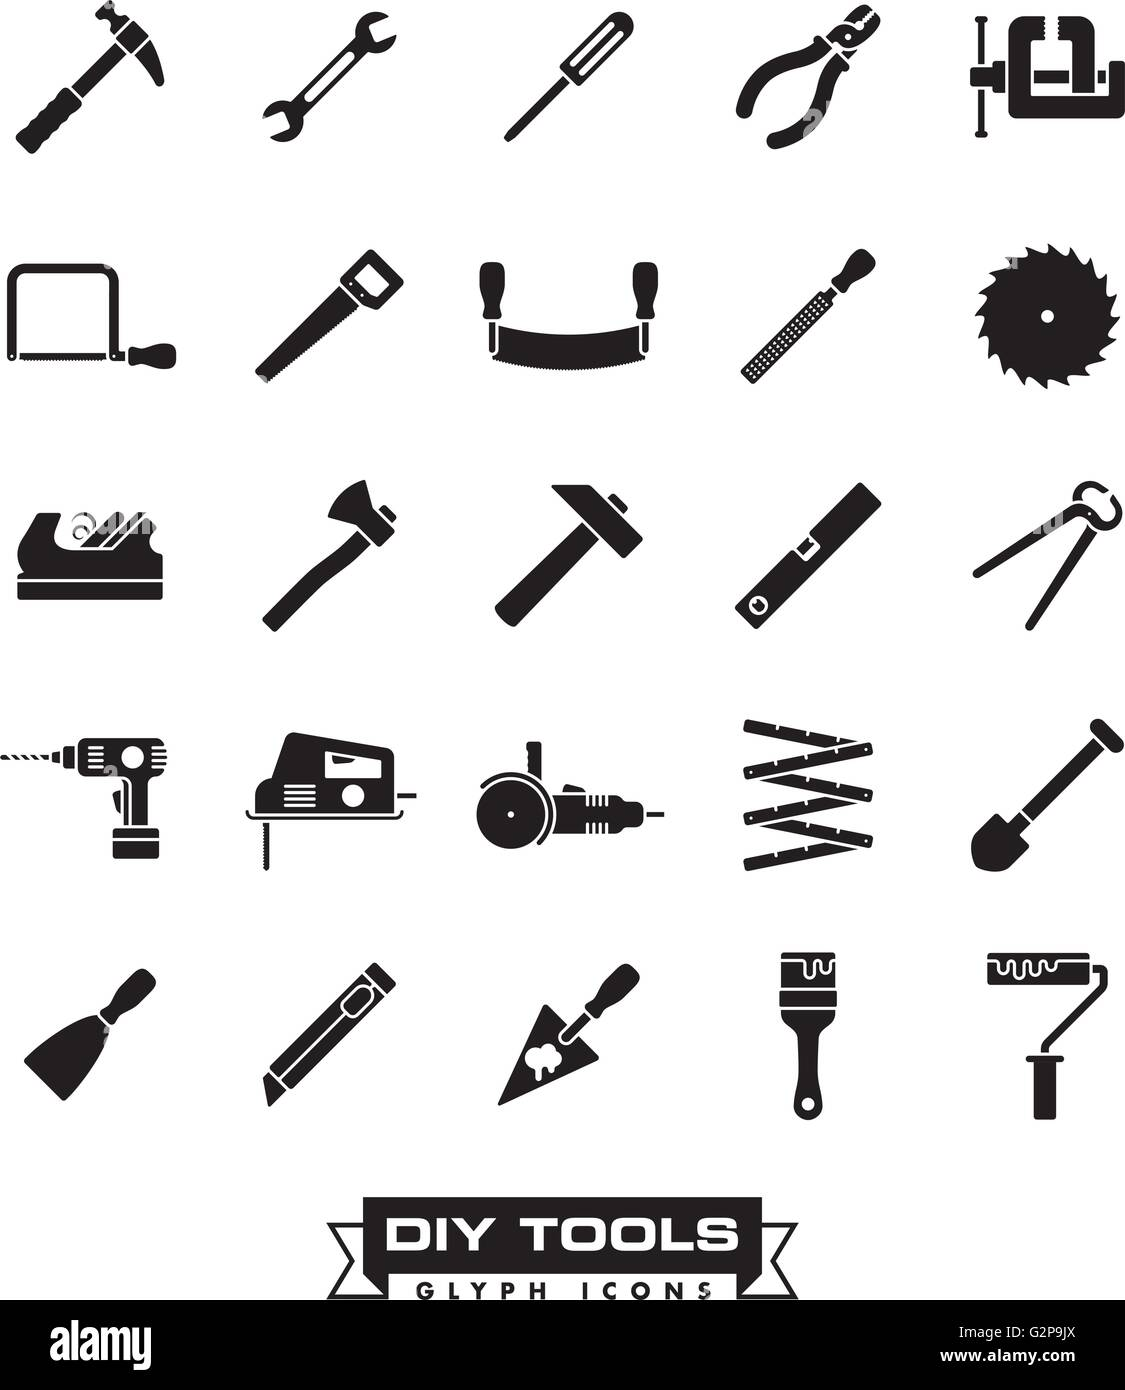 Collection of DIY and crafting tool vector glyph icons - Stock Vector